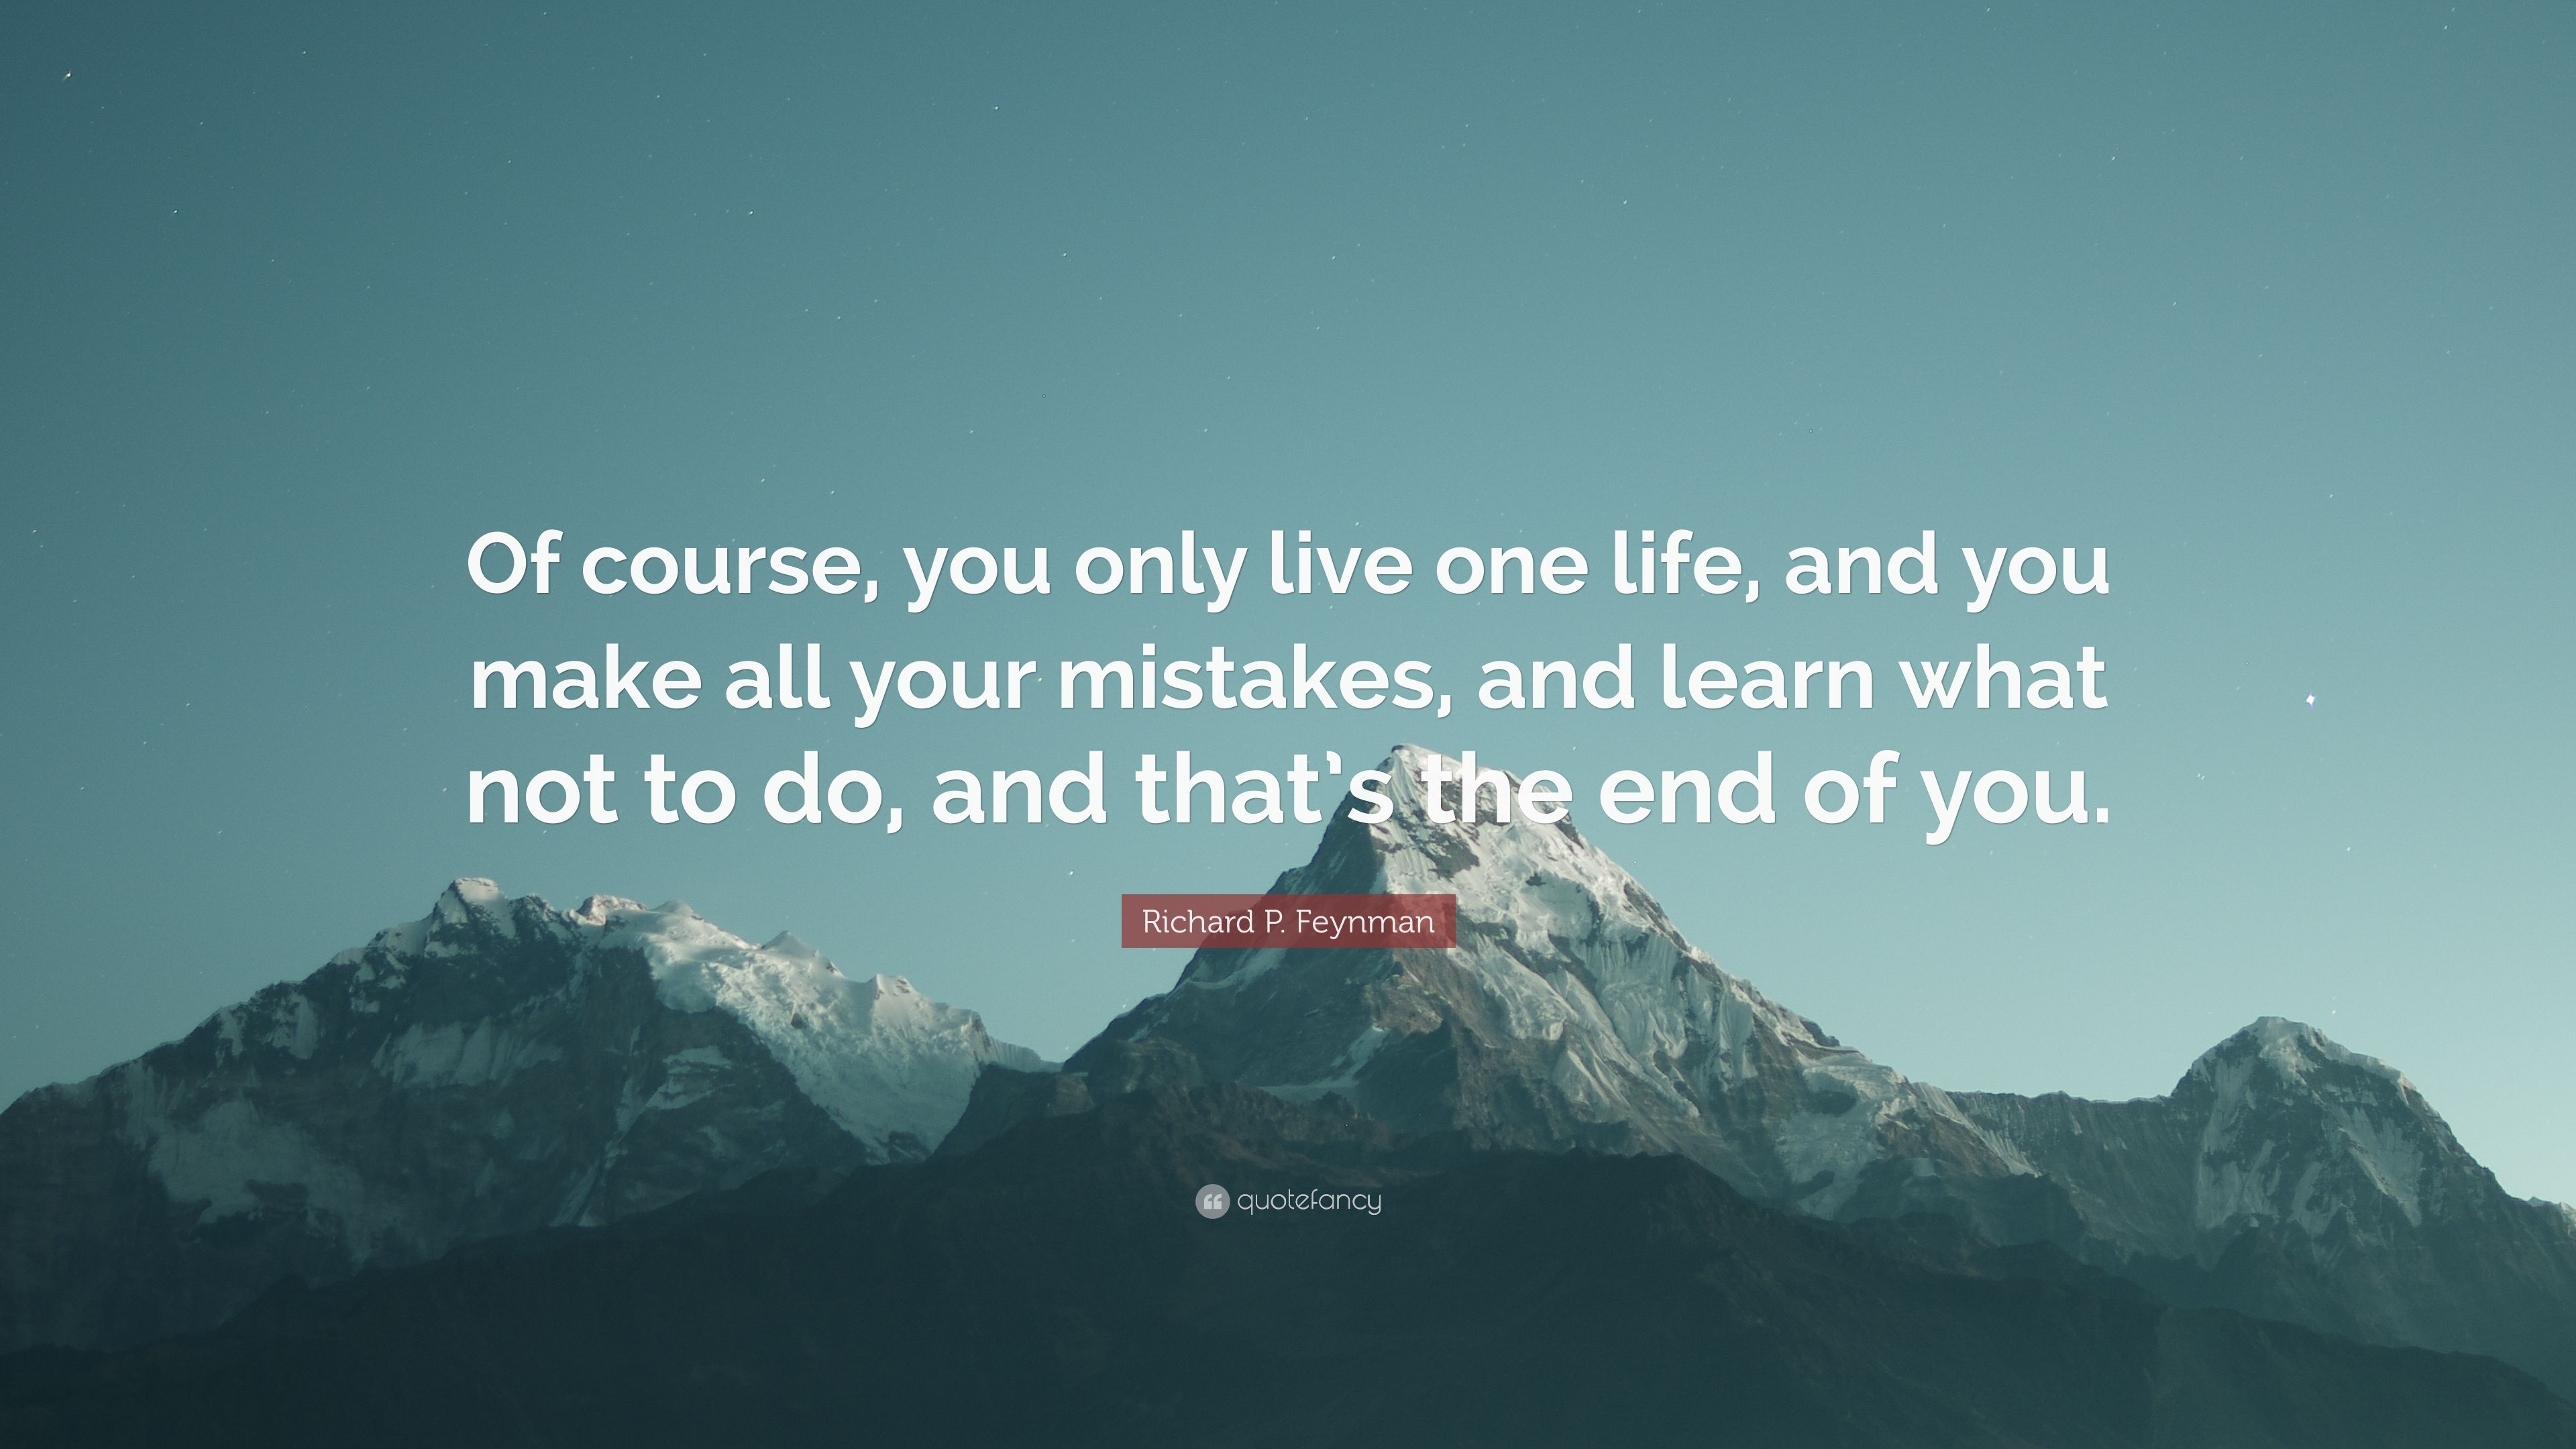 Richard P Feynman Quote Of Course You Only Live One Life And